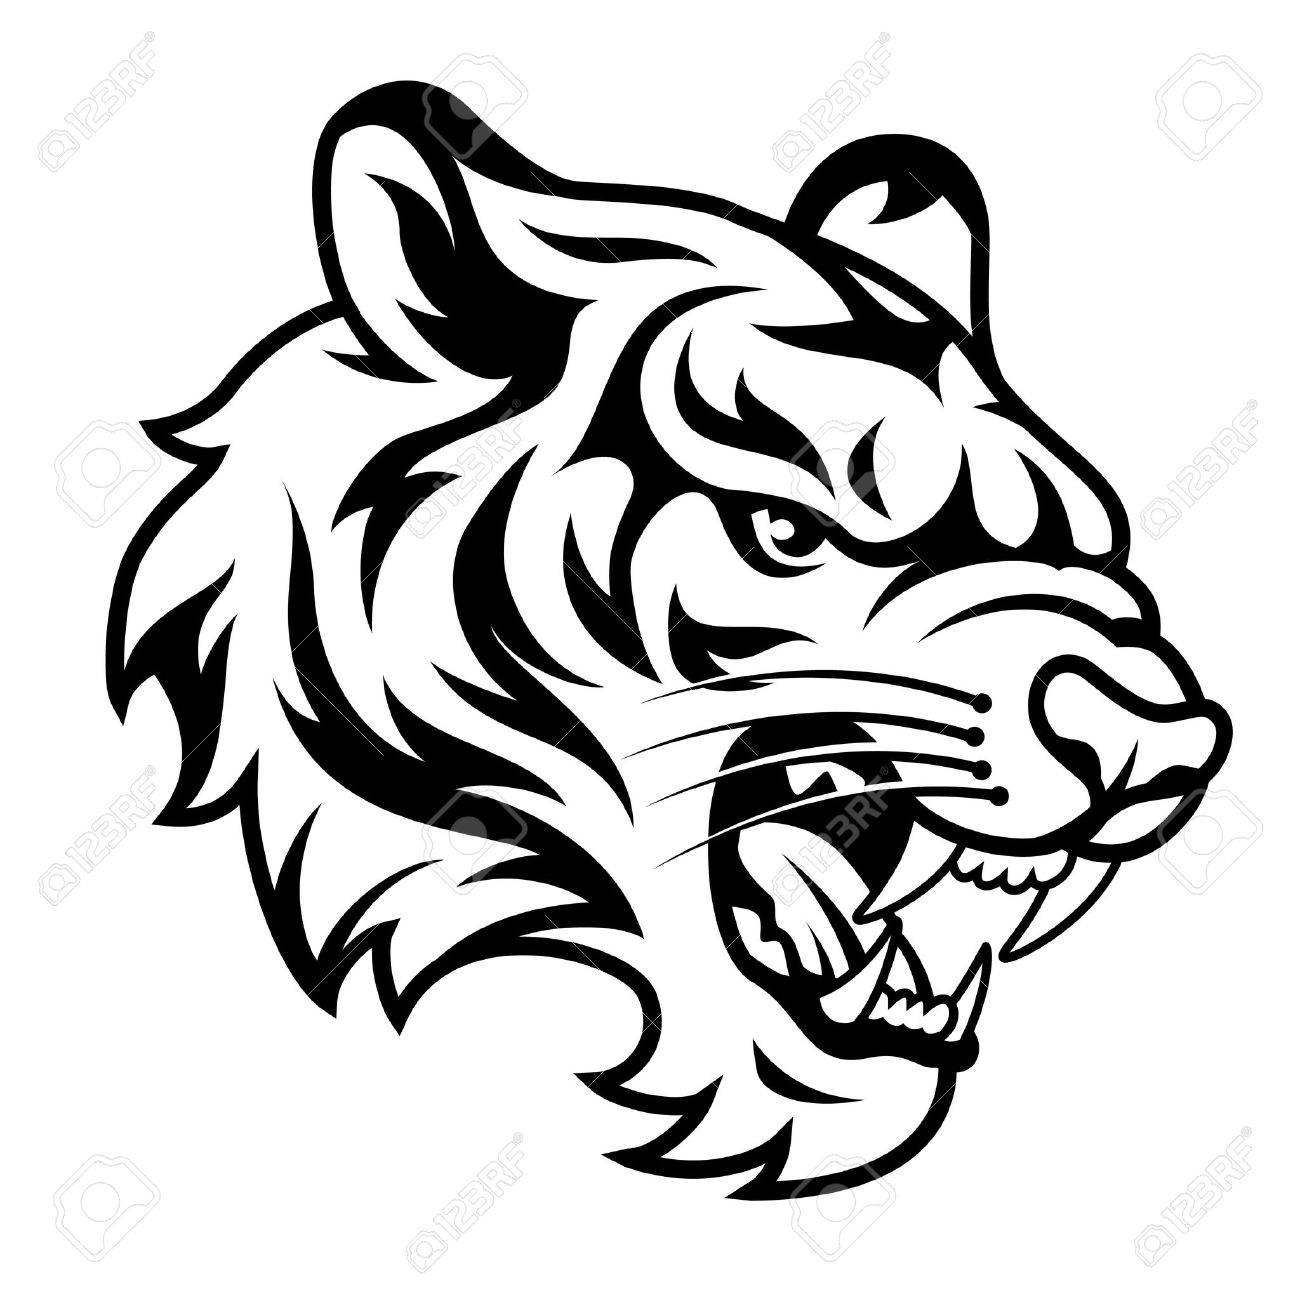 7676eb35a Roaring tiger's head isolated on white. Black and white vector illustration Stock  Vector - 31493228